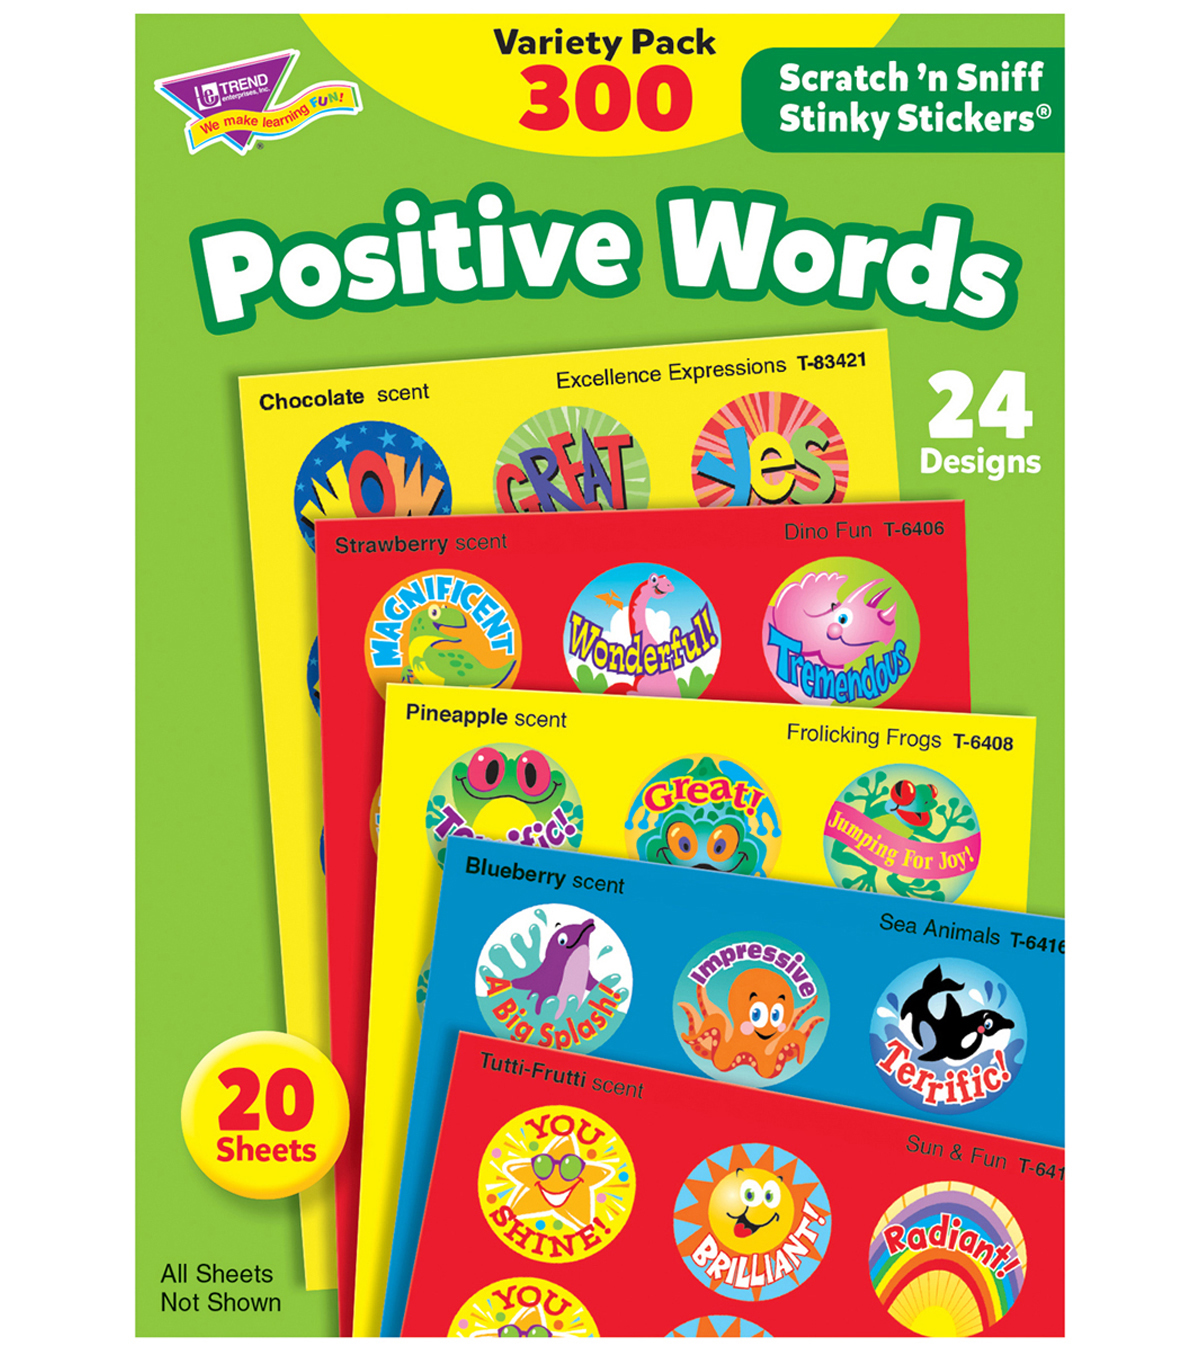 TREND Scratch\u0027n Sniff Stinky Stickers Variety Pack-Positive Words